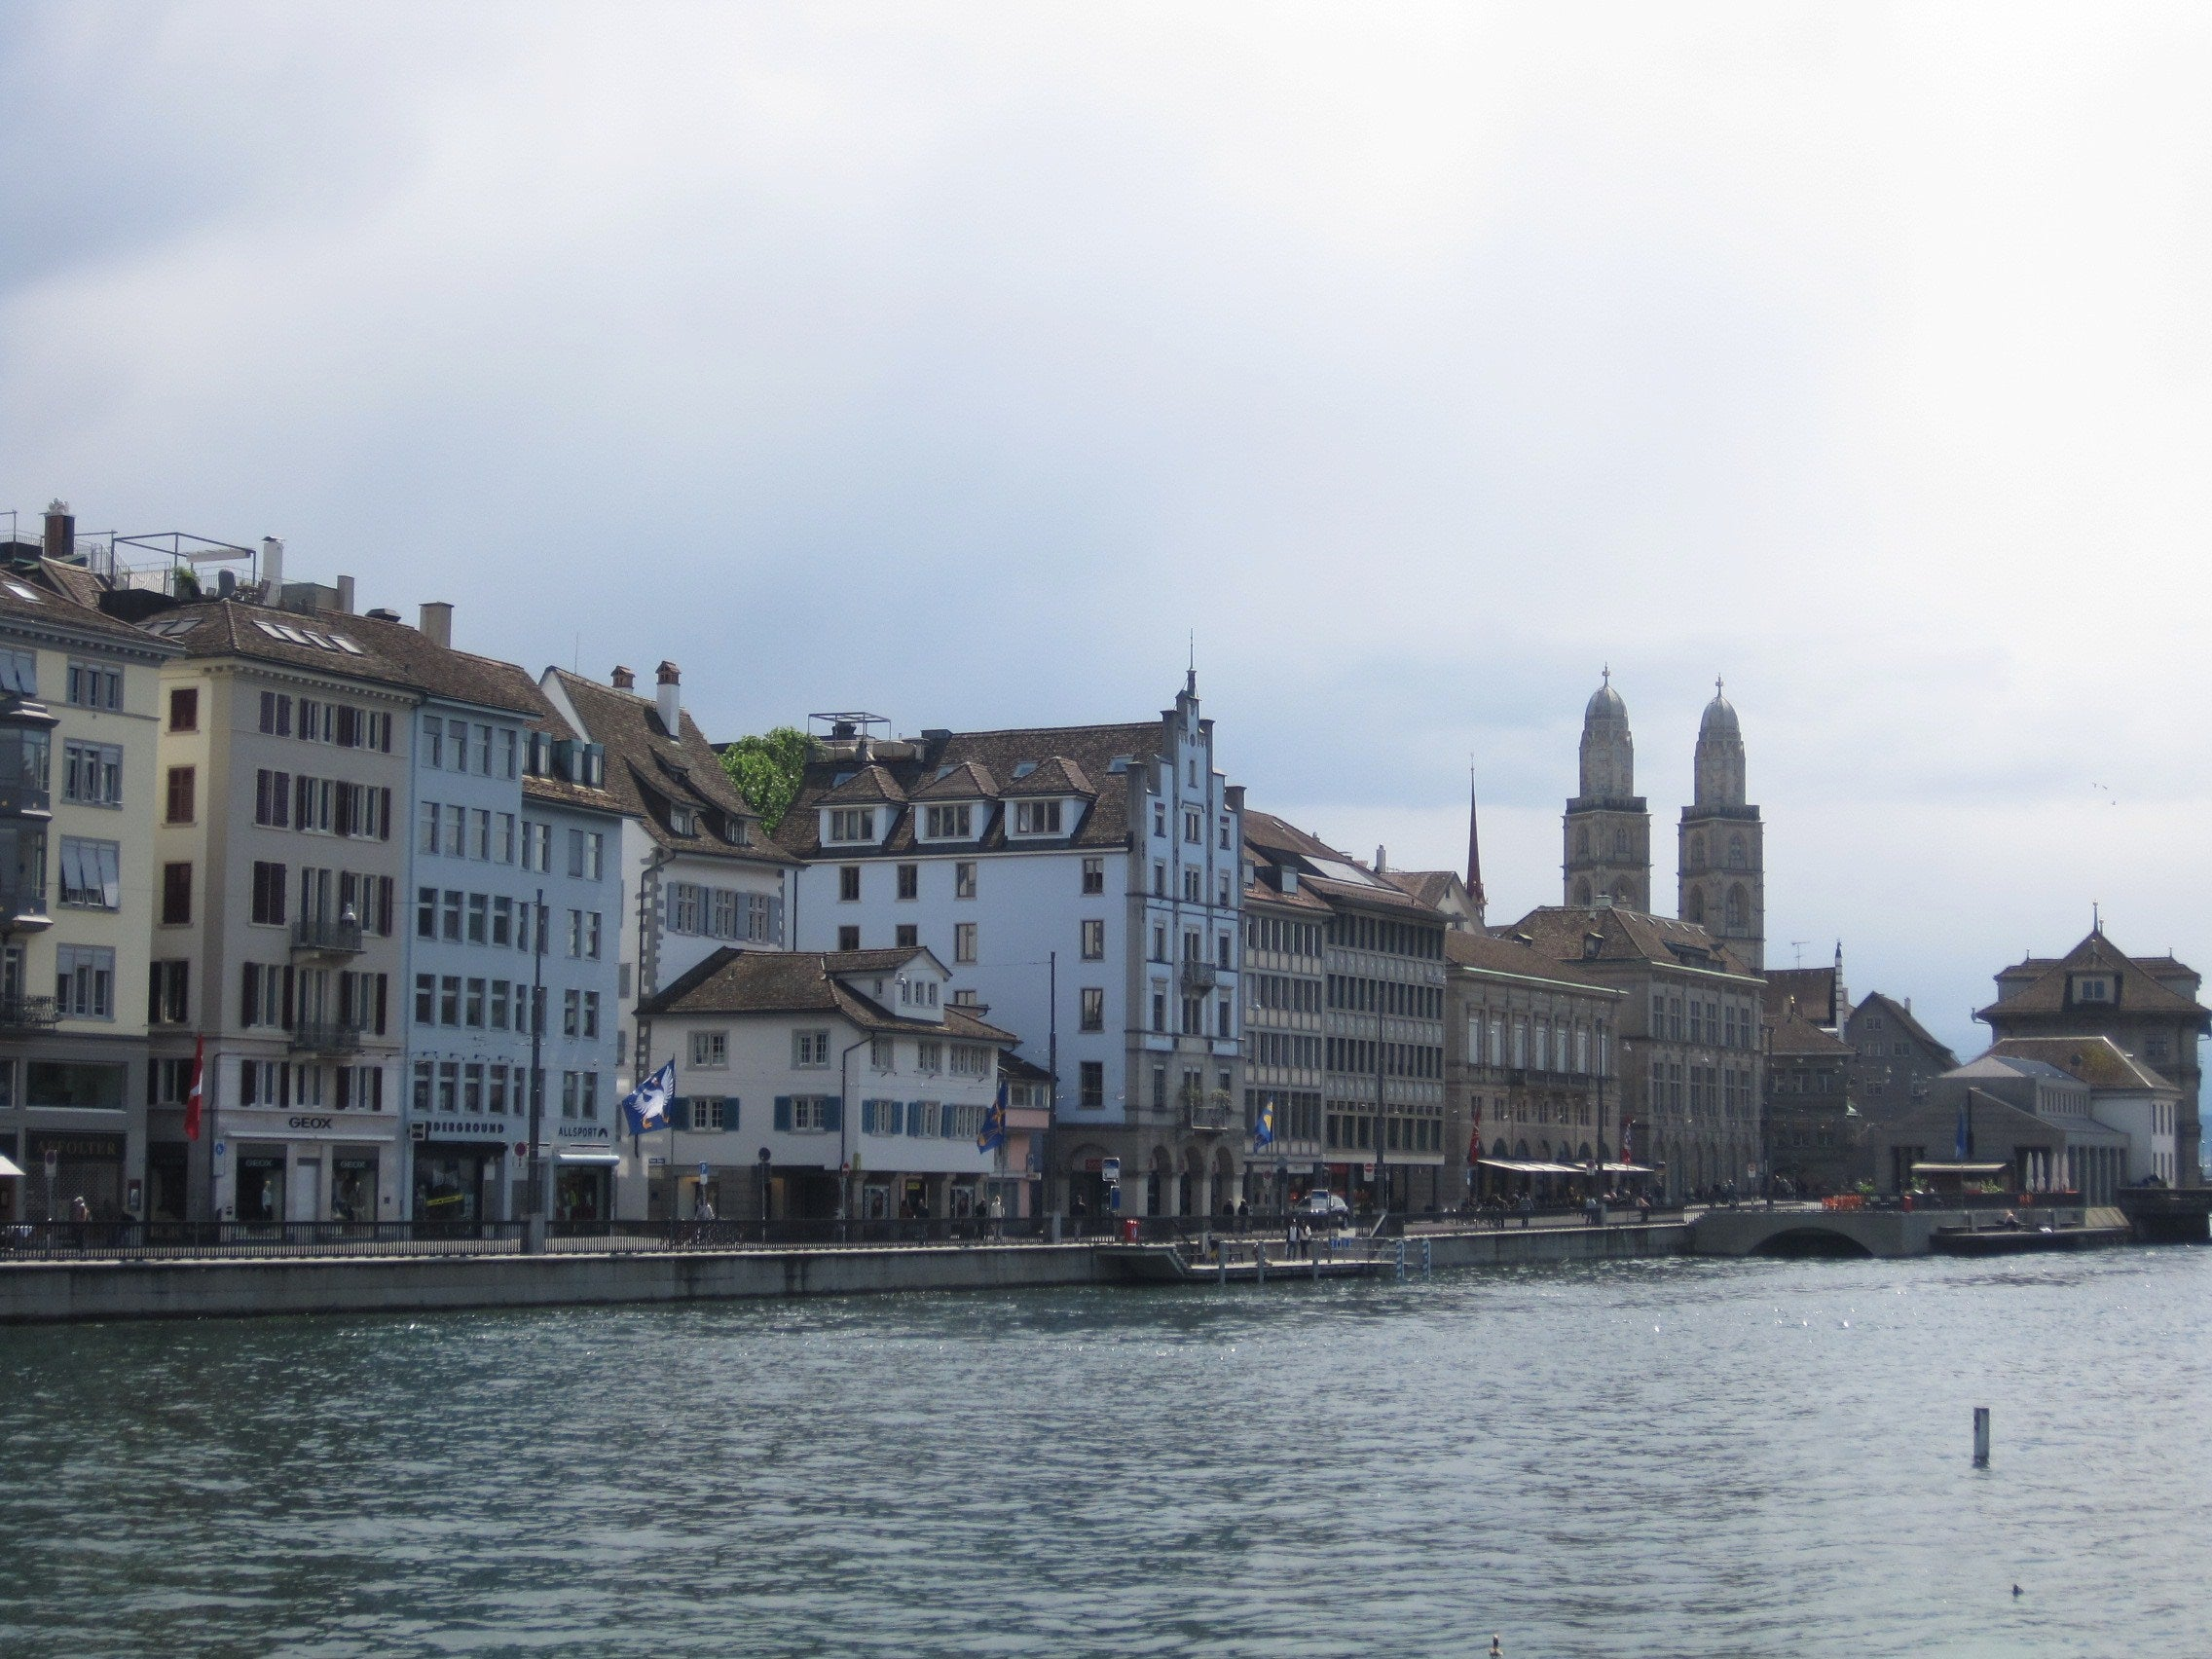 Mar en Grossmünster